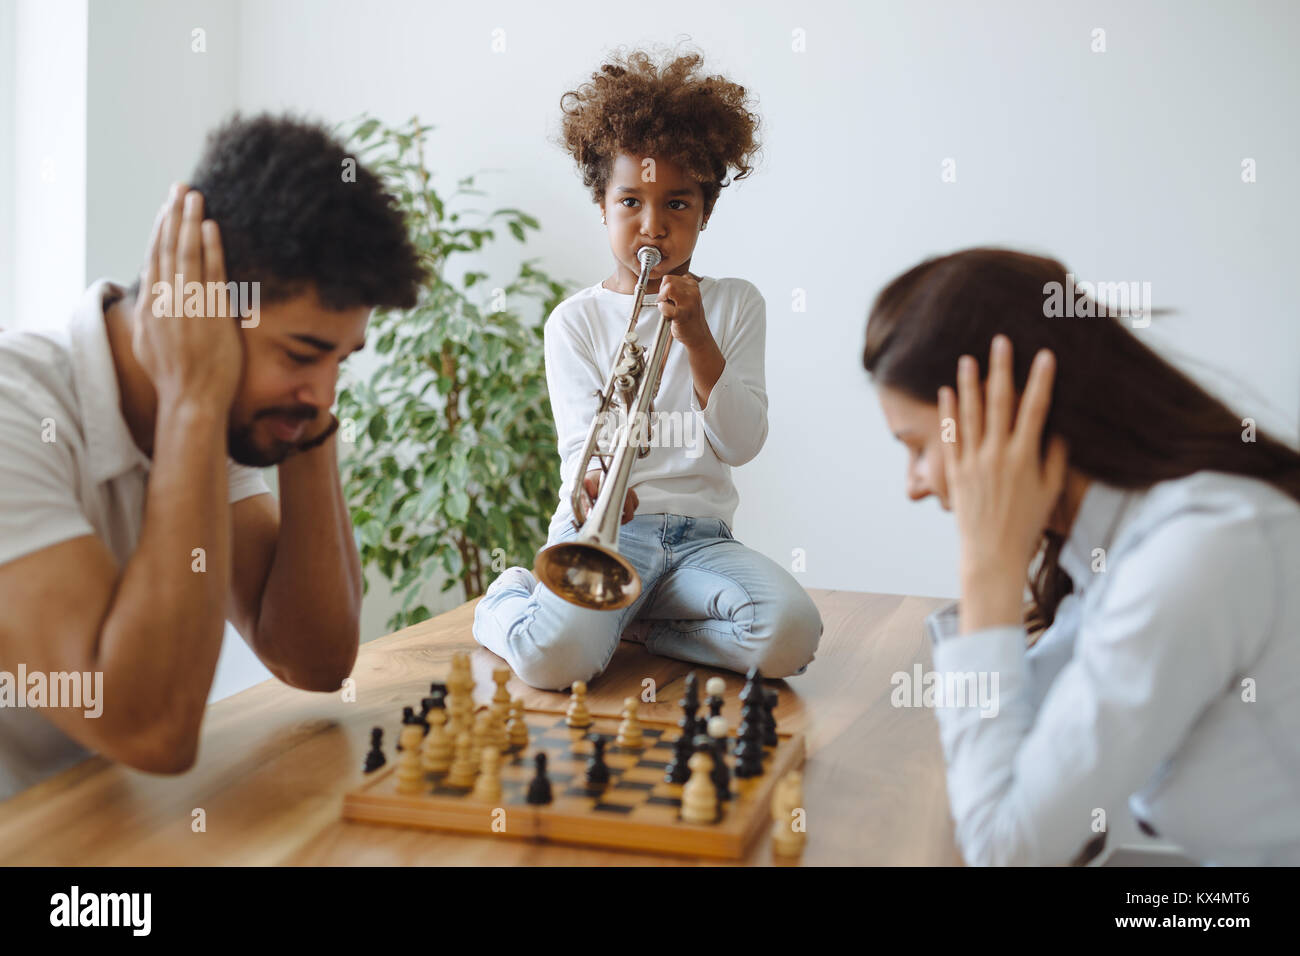 Mother and father trying to play chess while their child plays trumpet - Stock Image